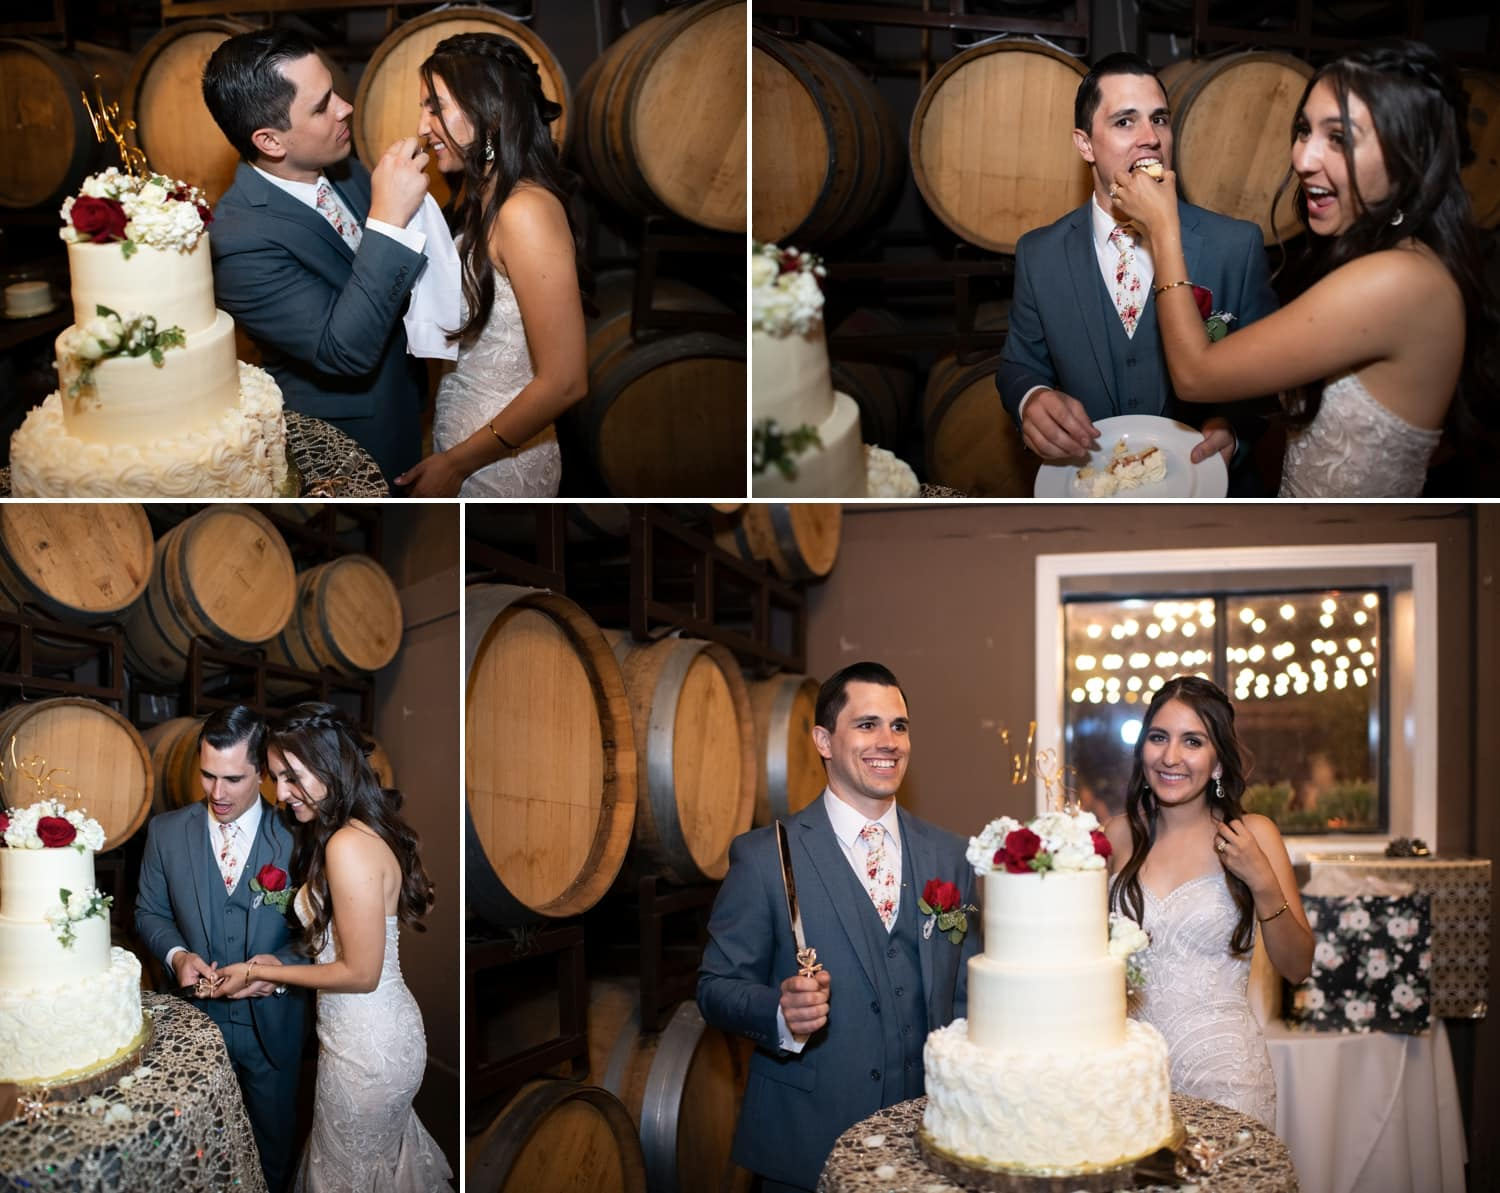 Bride and groom cutting their wedding cake at the Lorimar Winery Barrel Room.